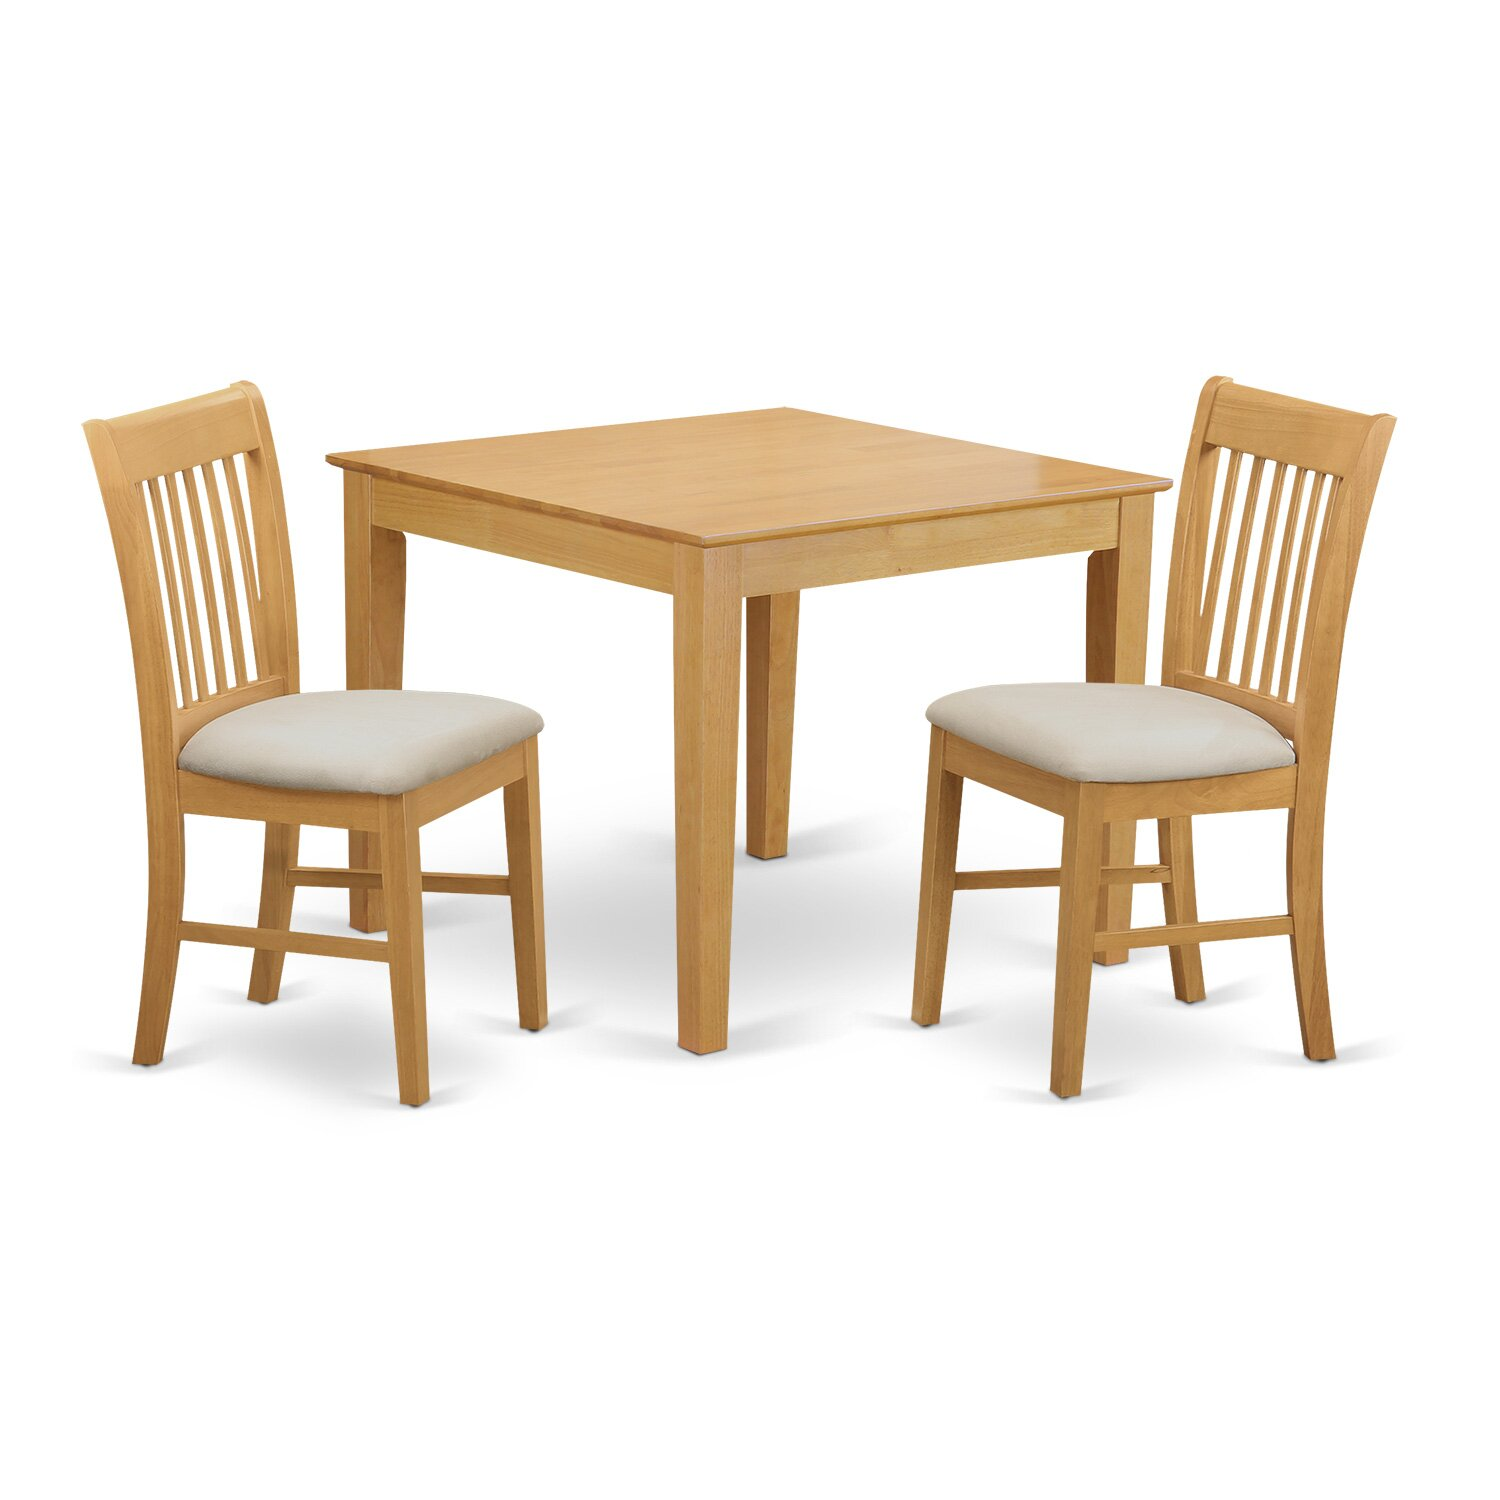 East west oxford 3 piece dining set reviews wayfair for 3 piece dining room table